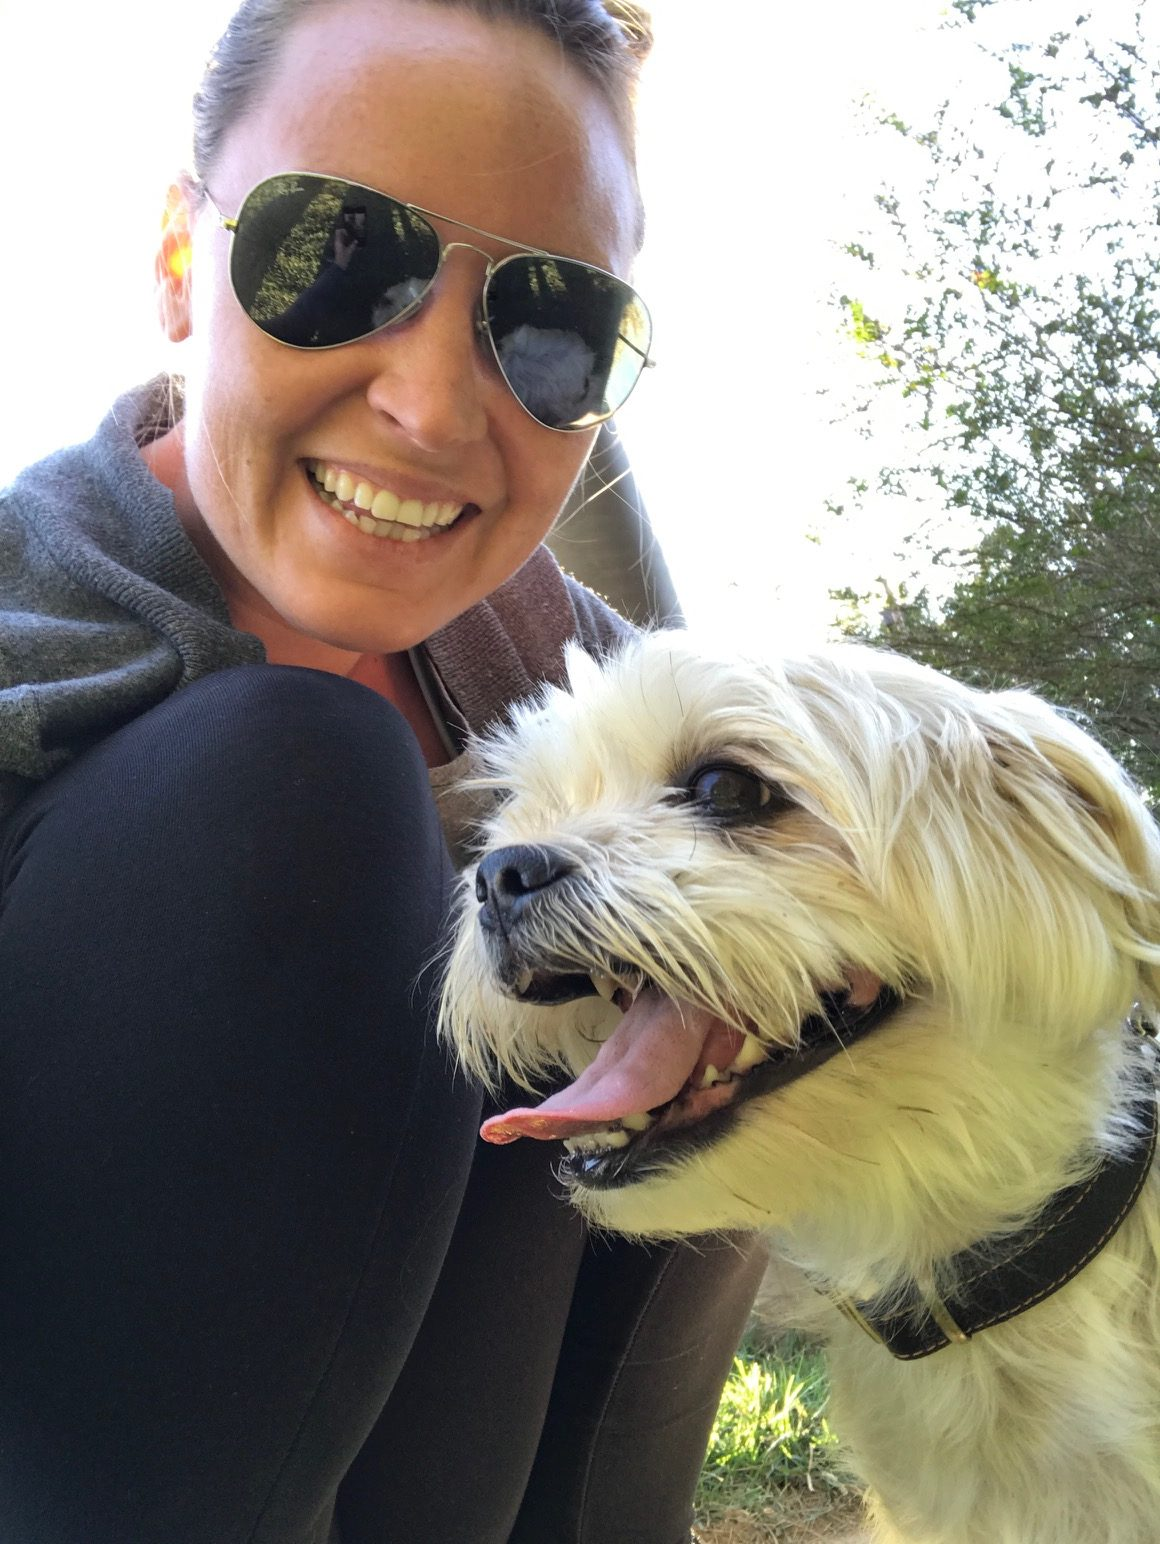 Don't miss Shea's top tips for traveling with your pups!